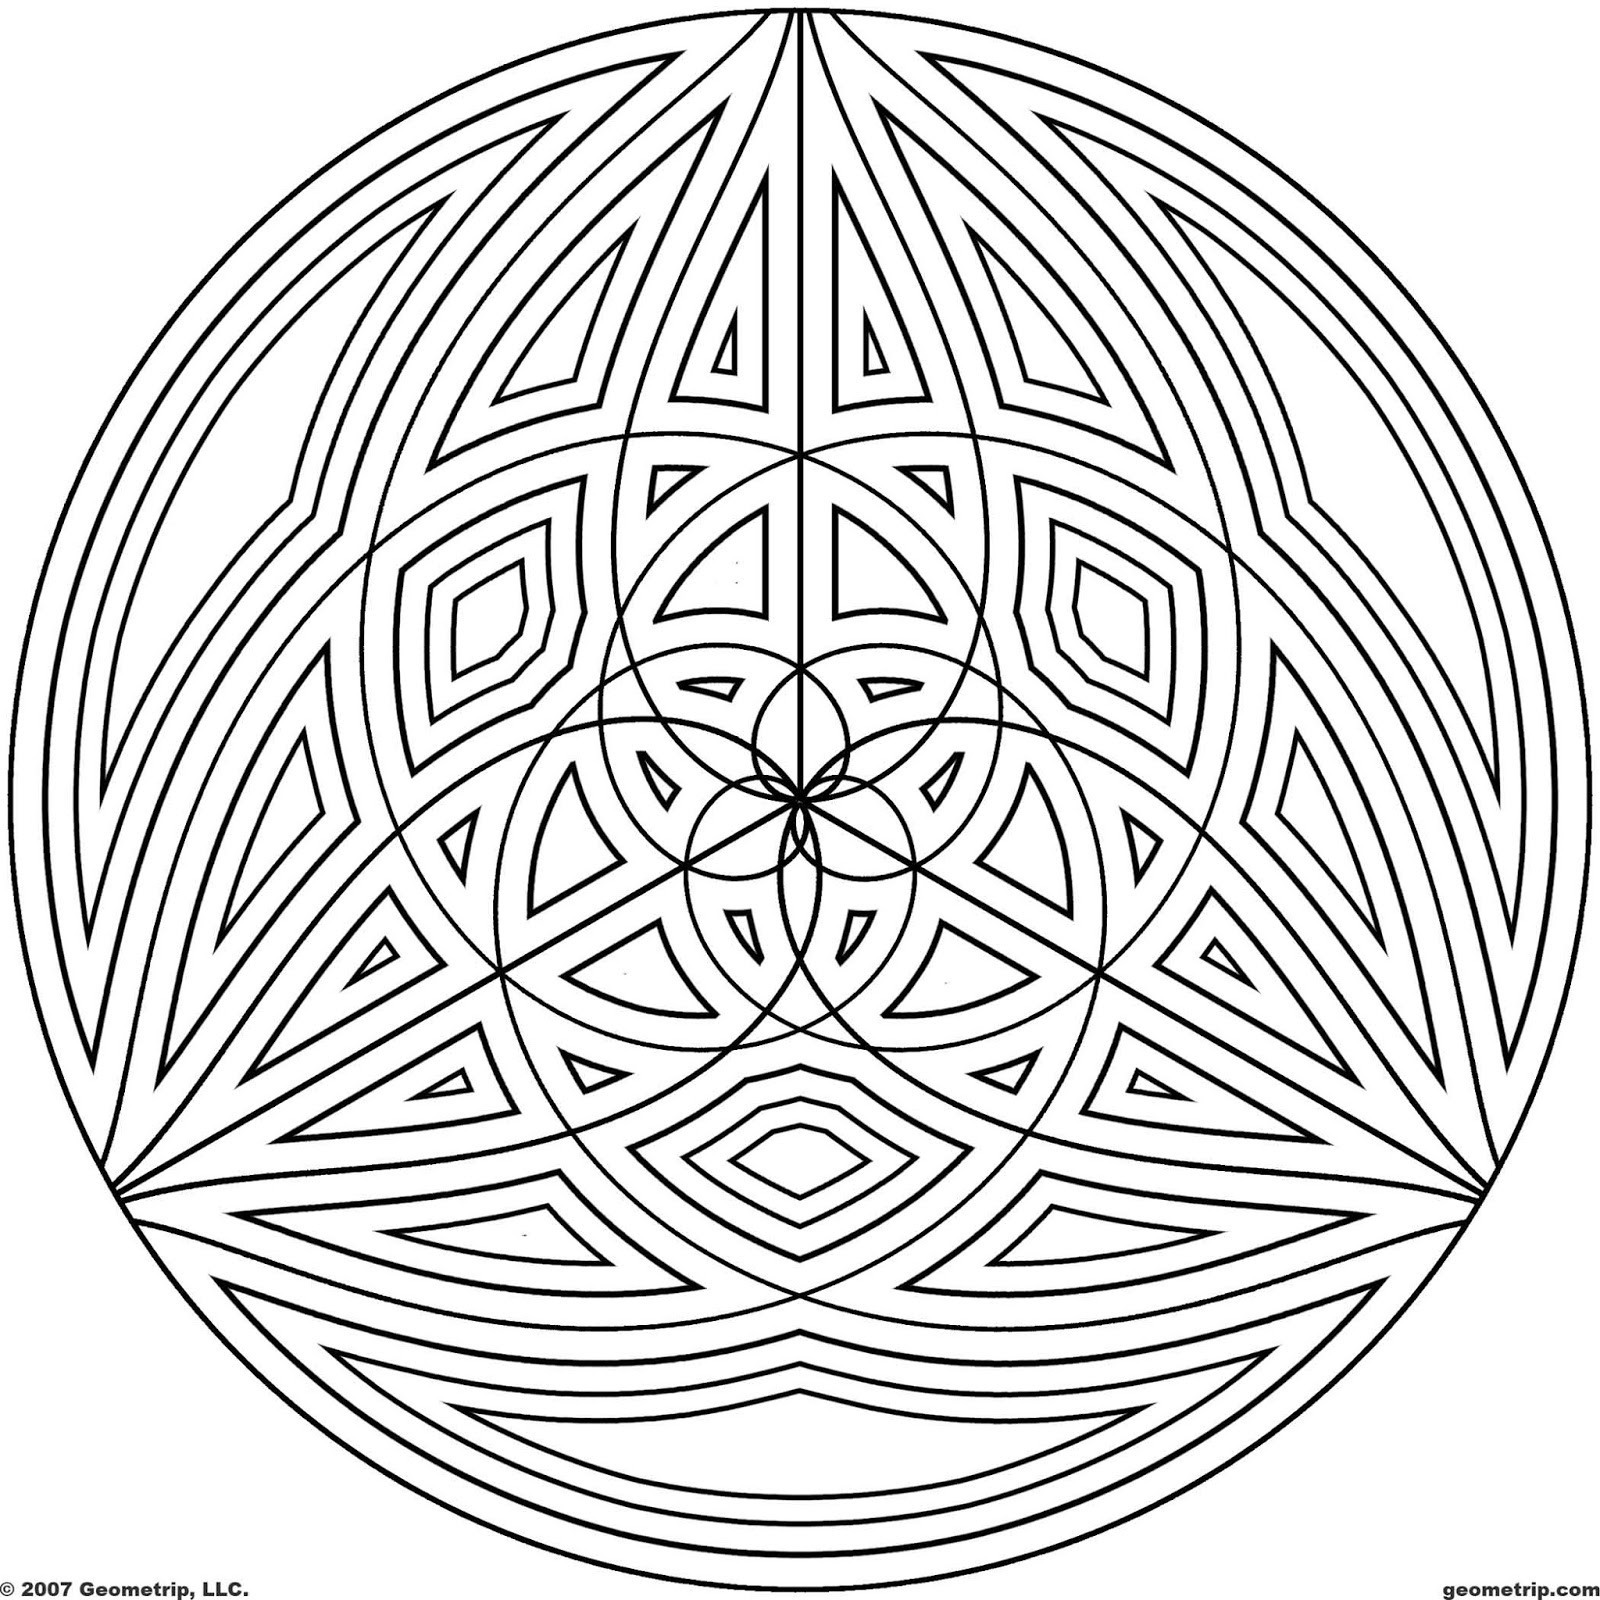 cool patterns to colour in cool printable coloring pages for adults at getdrawings patterns in to cool colour